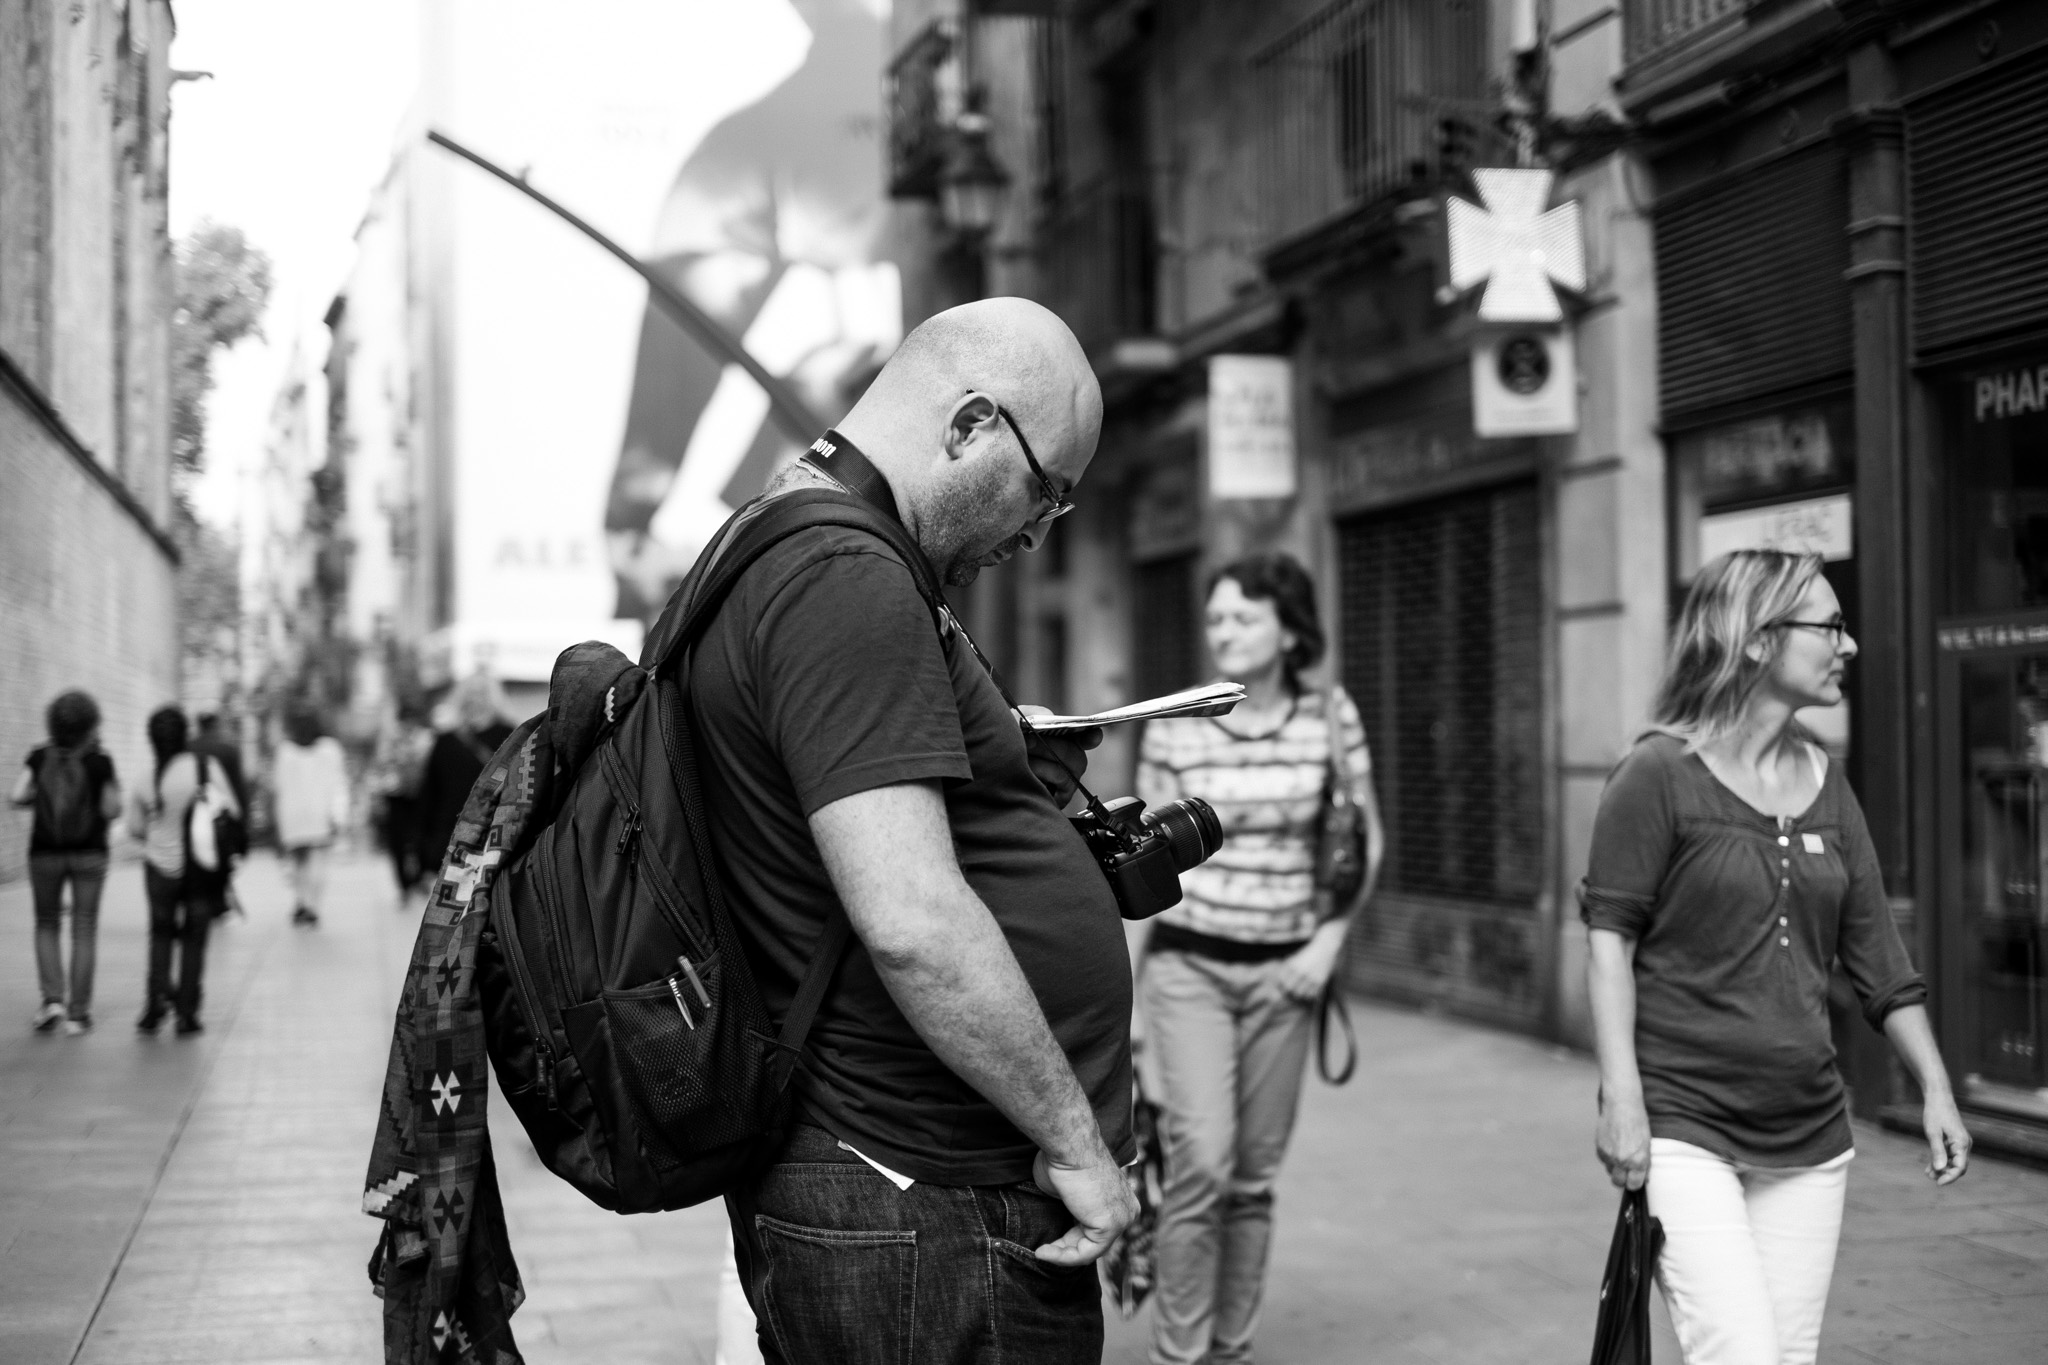 Photographed this very touristy-looking tourist finding his way about the city.